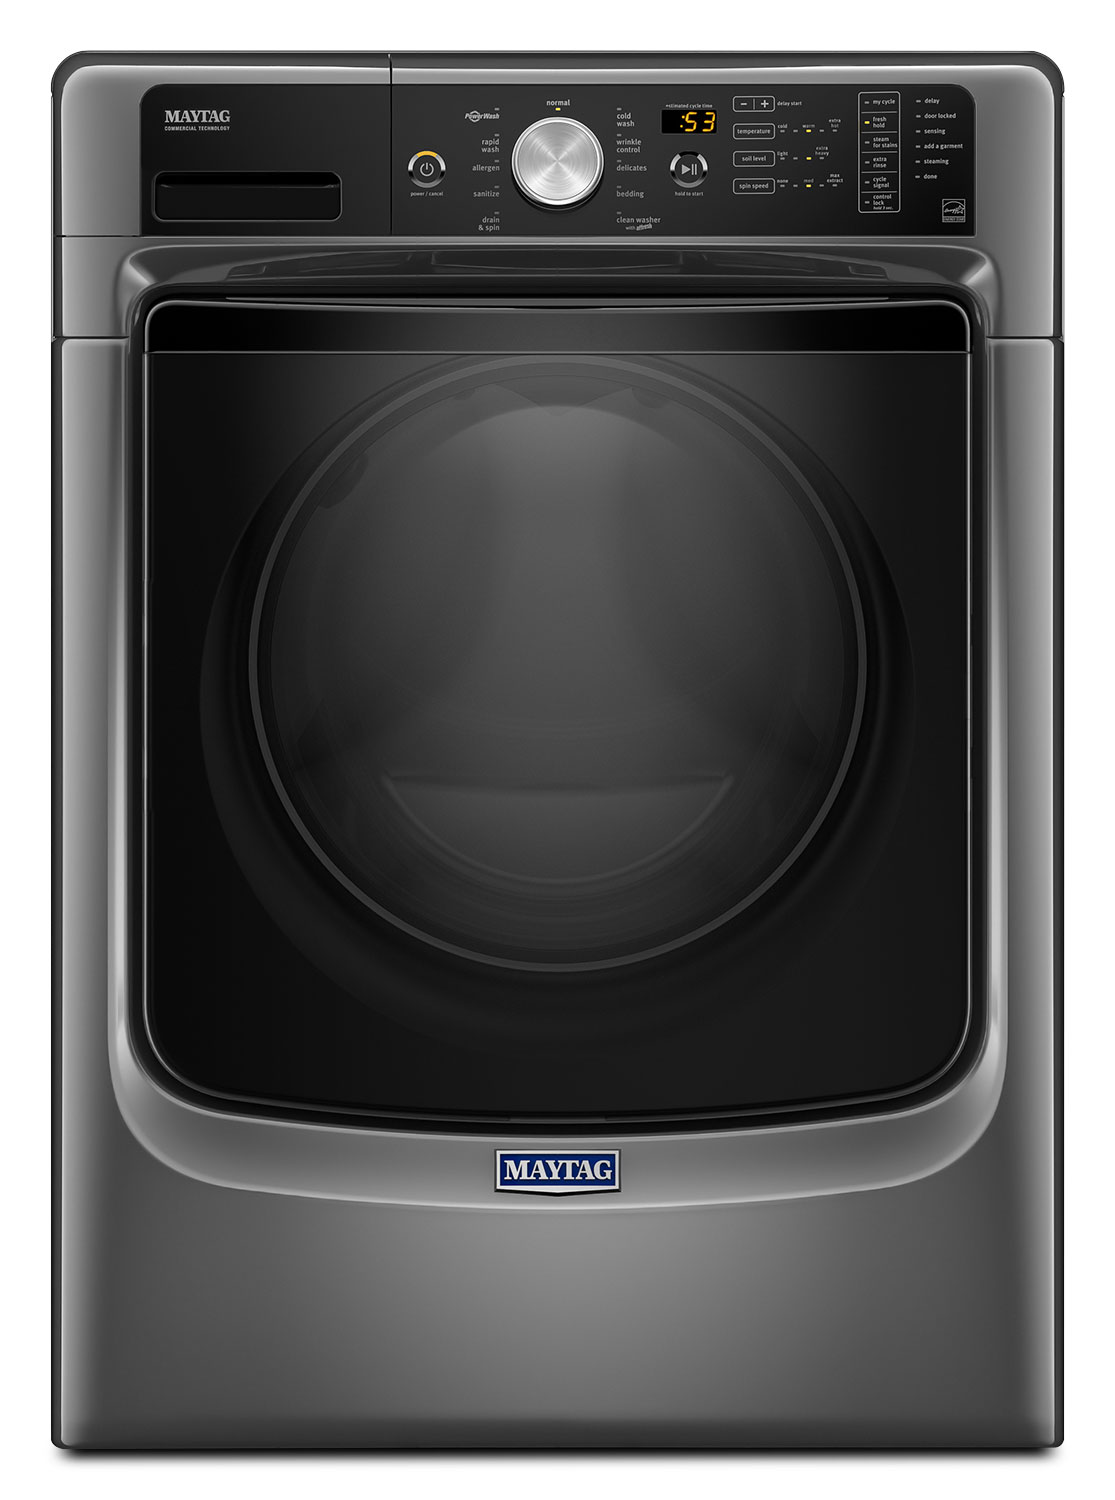 Maytag Metallic Slate Front-Load Washer (5.2 Cu. Ft.) - MHW5500FC